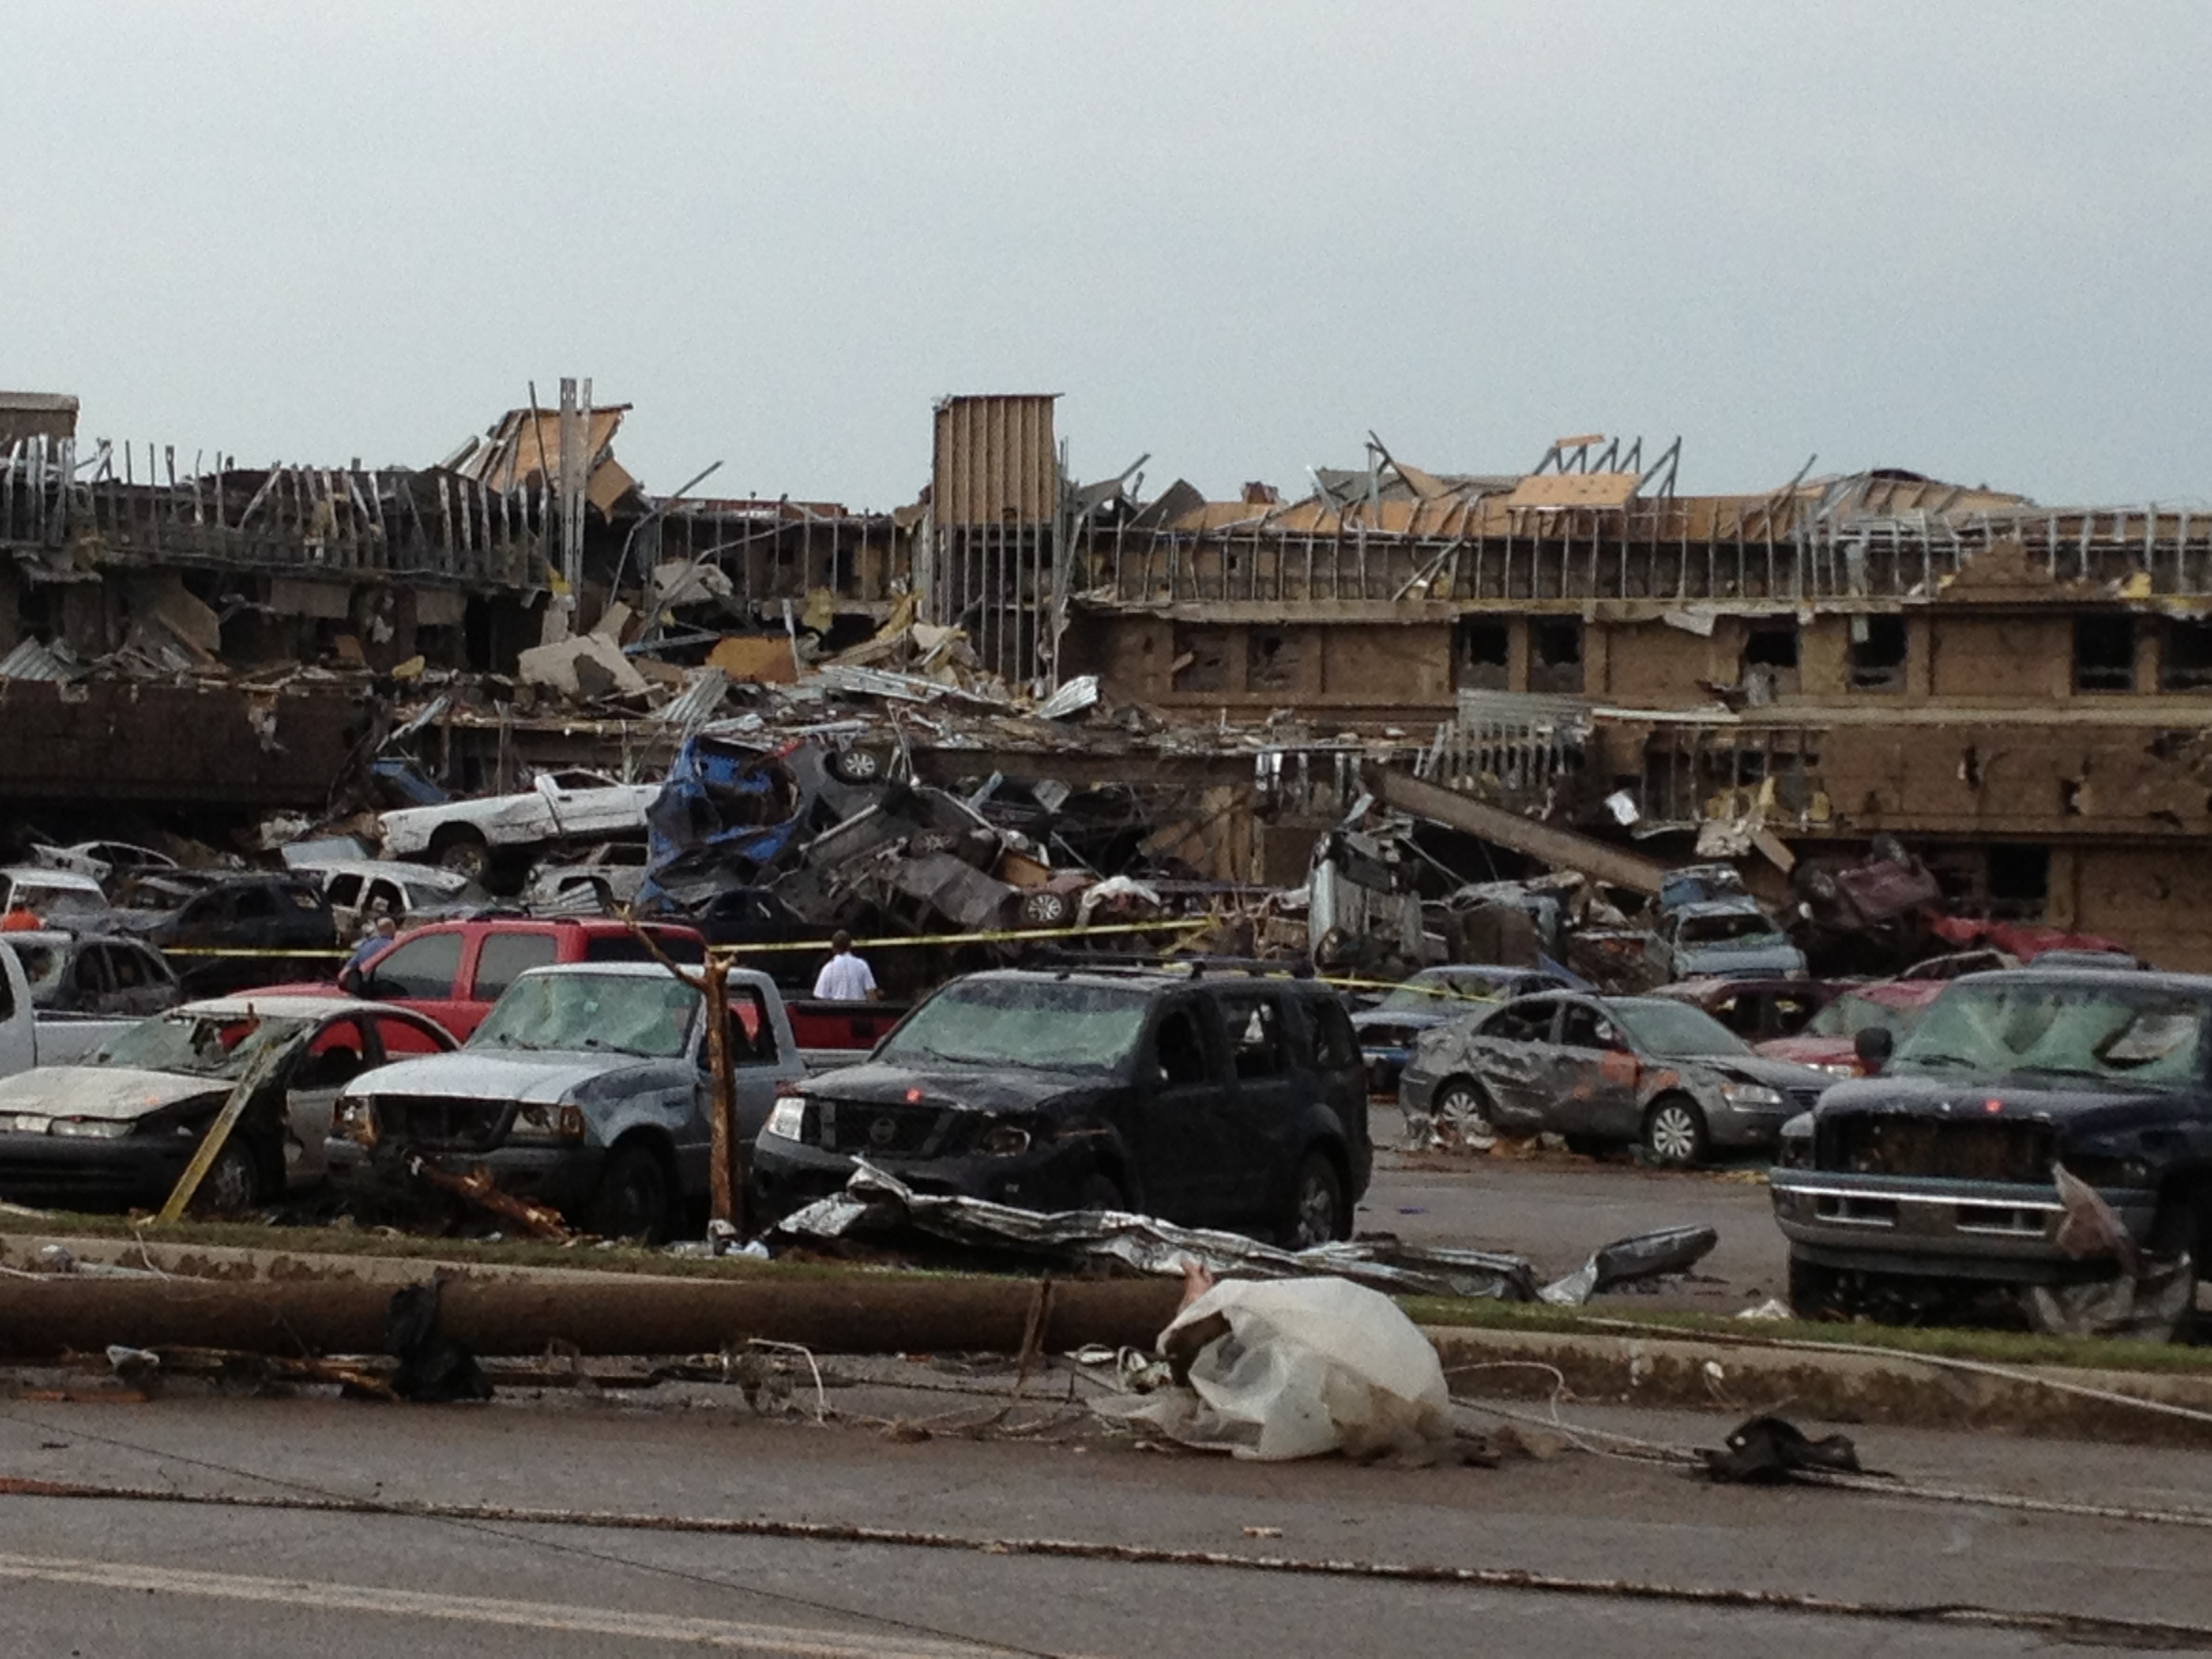 CNN iReporter Tyler Menge captured an image of horrific damage near Moore Medical Center.The storm system has ripped through the U.S. heartland for the past two days - killing dozens and injuring over a hundred.